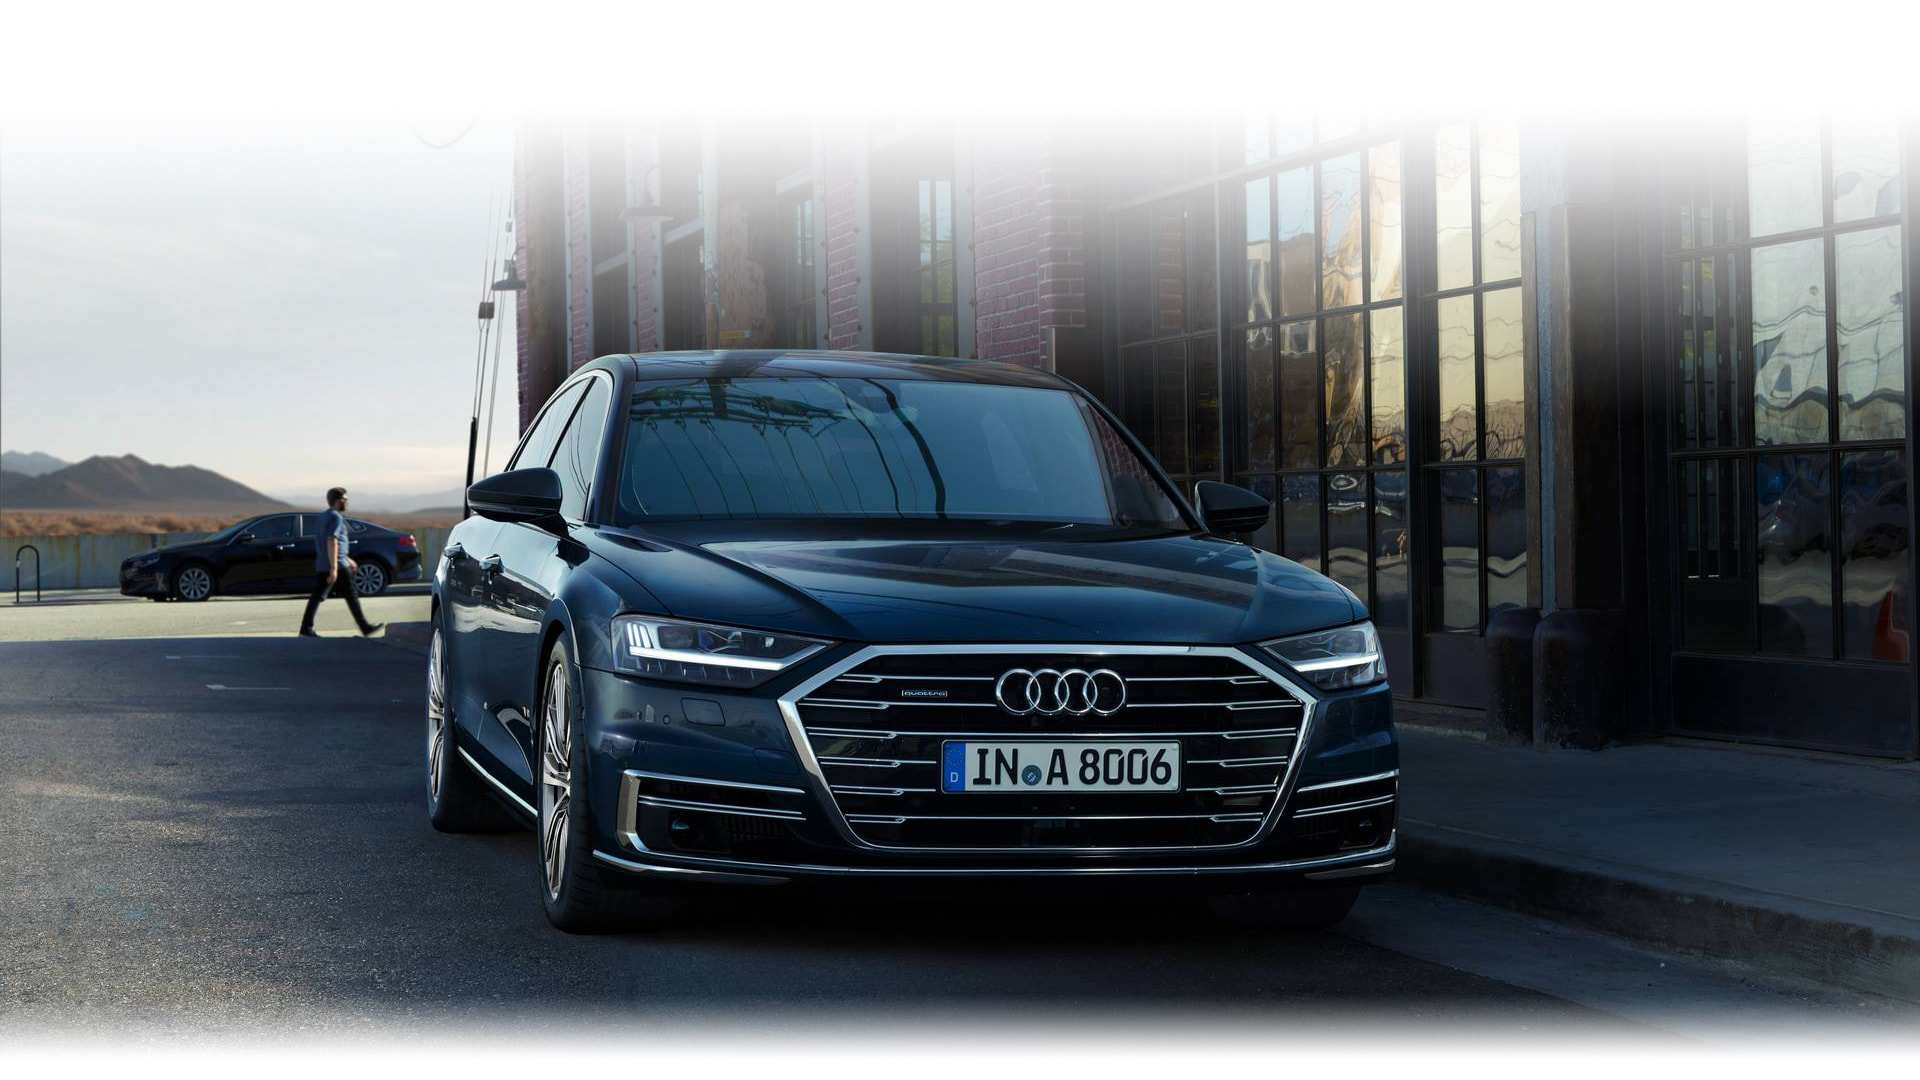 65 Gallery of Audi A8 2019 Wallpaper by Audi A8 2019